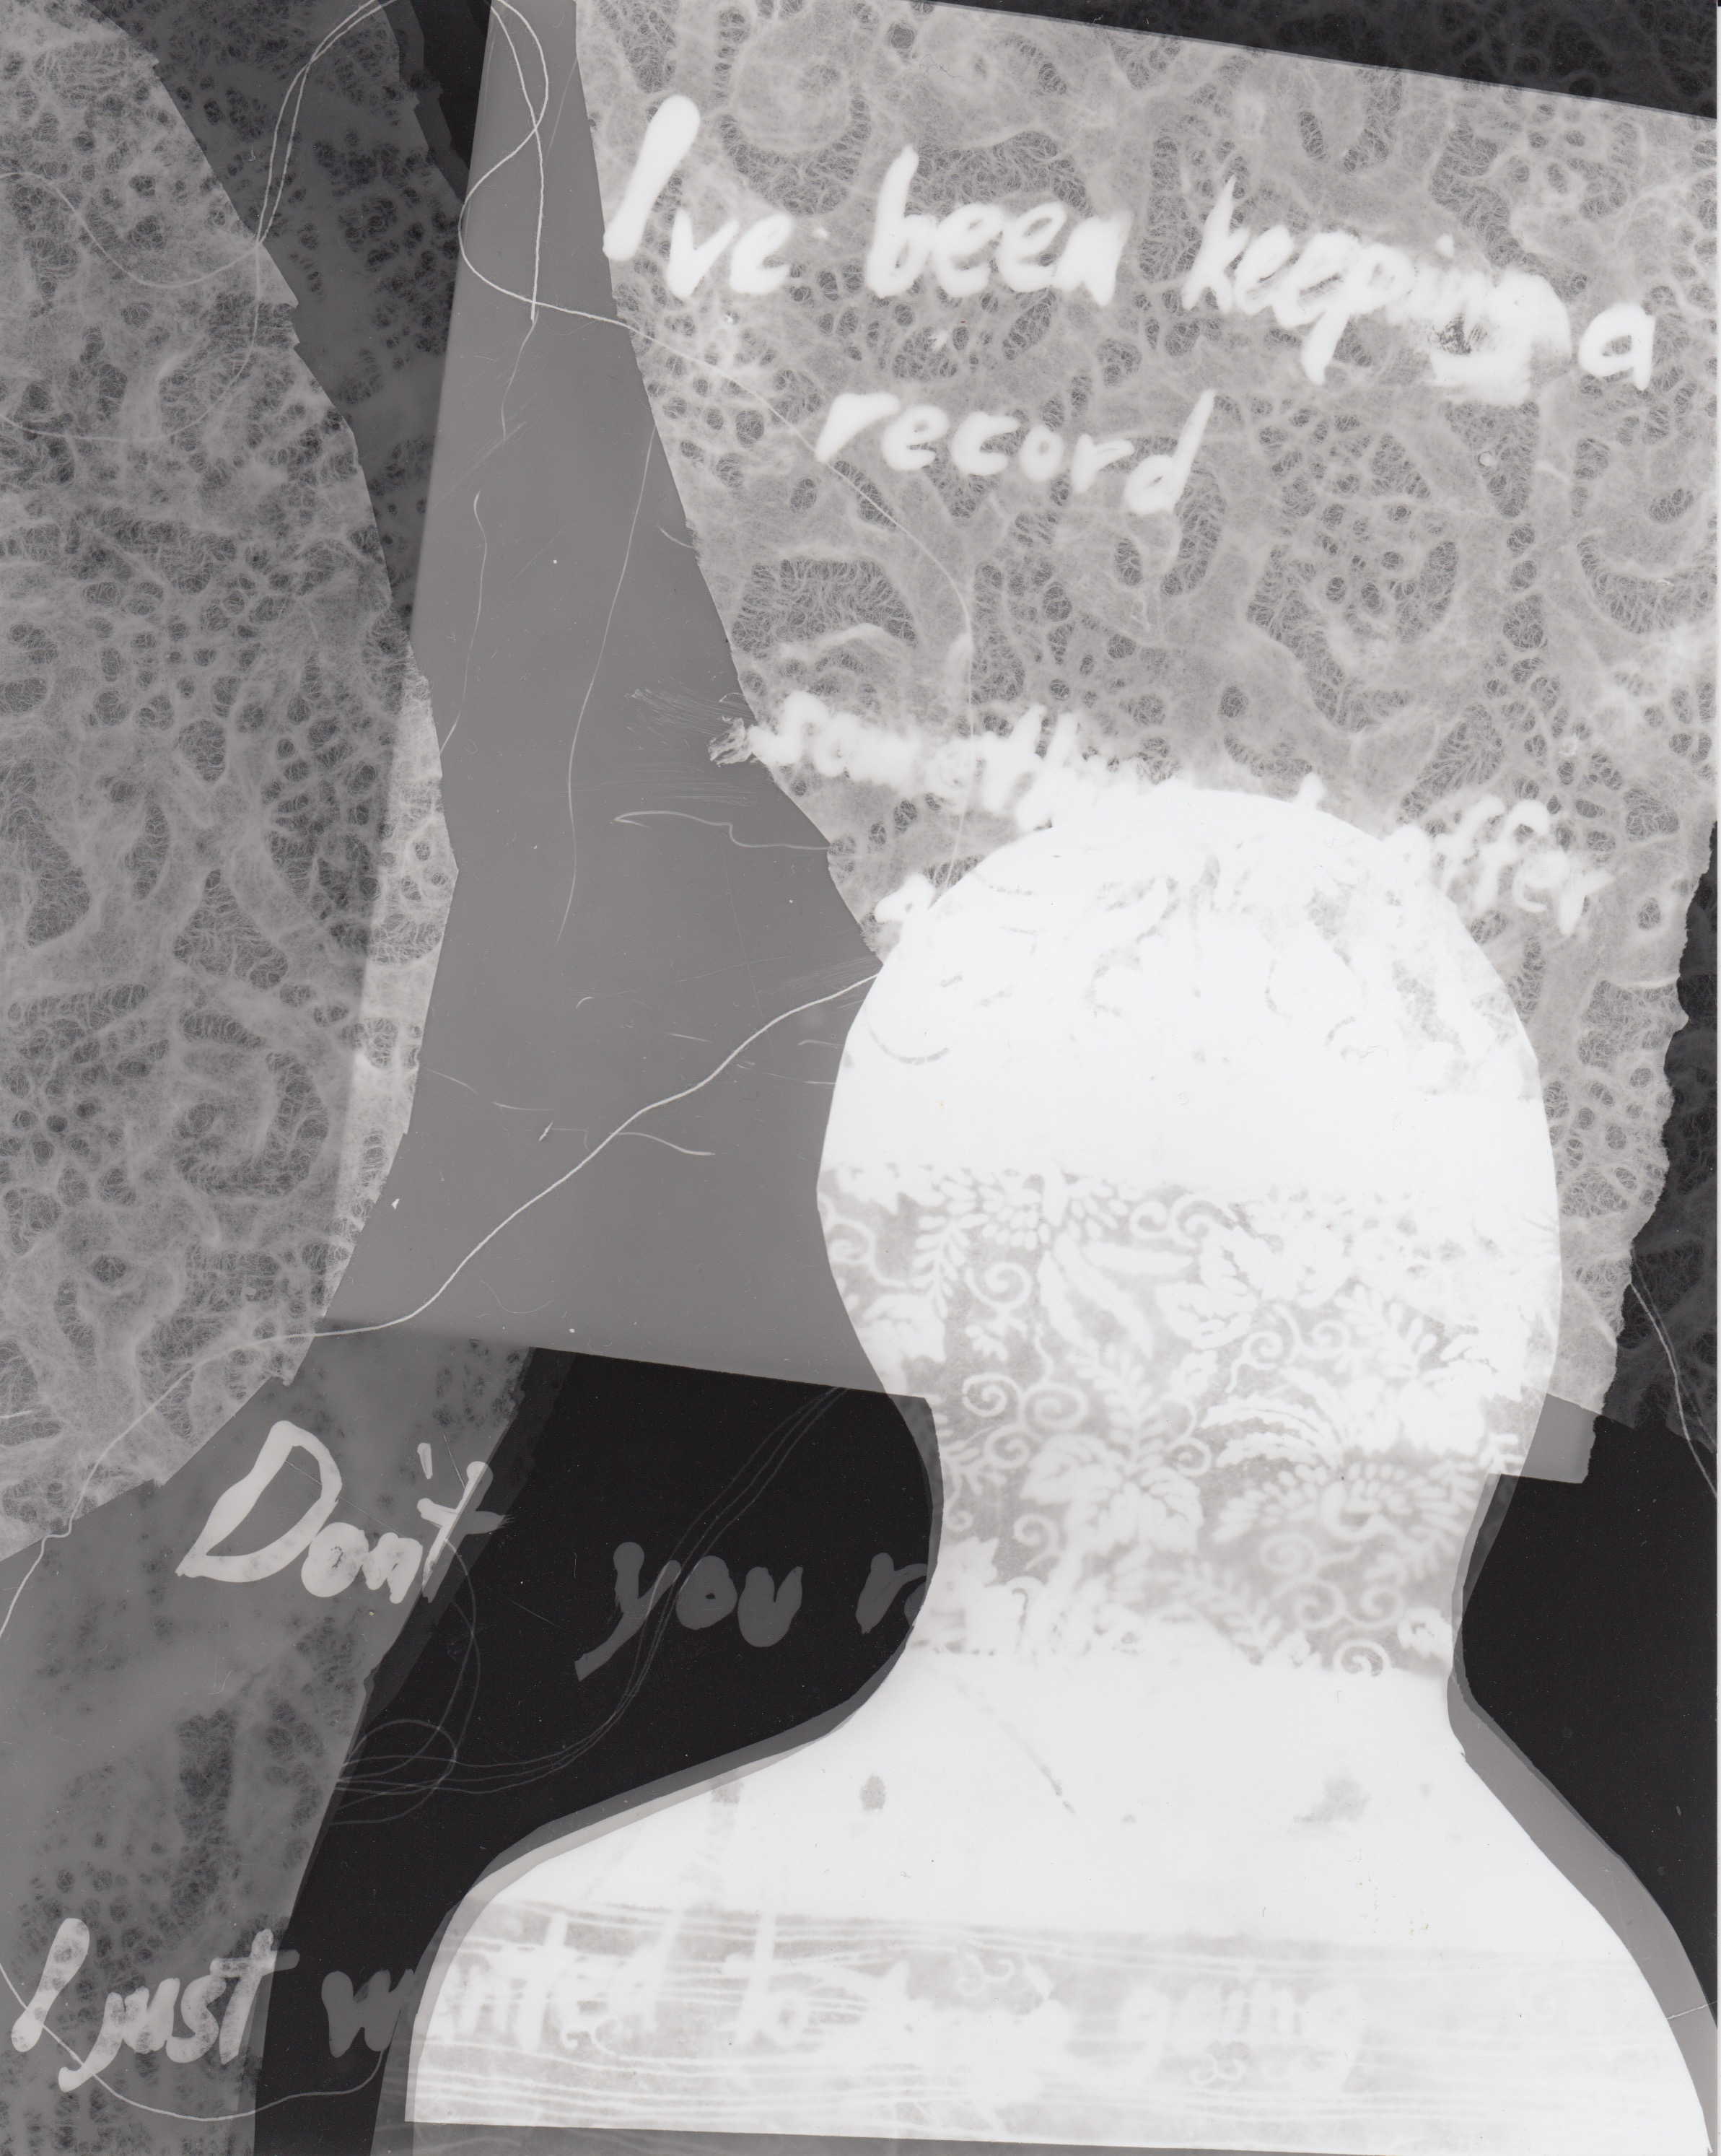 I've been keeping a record (3) - Photogram